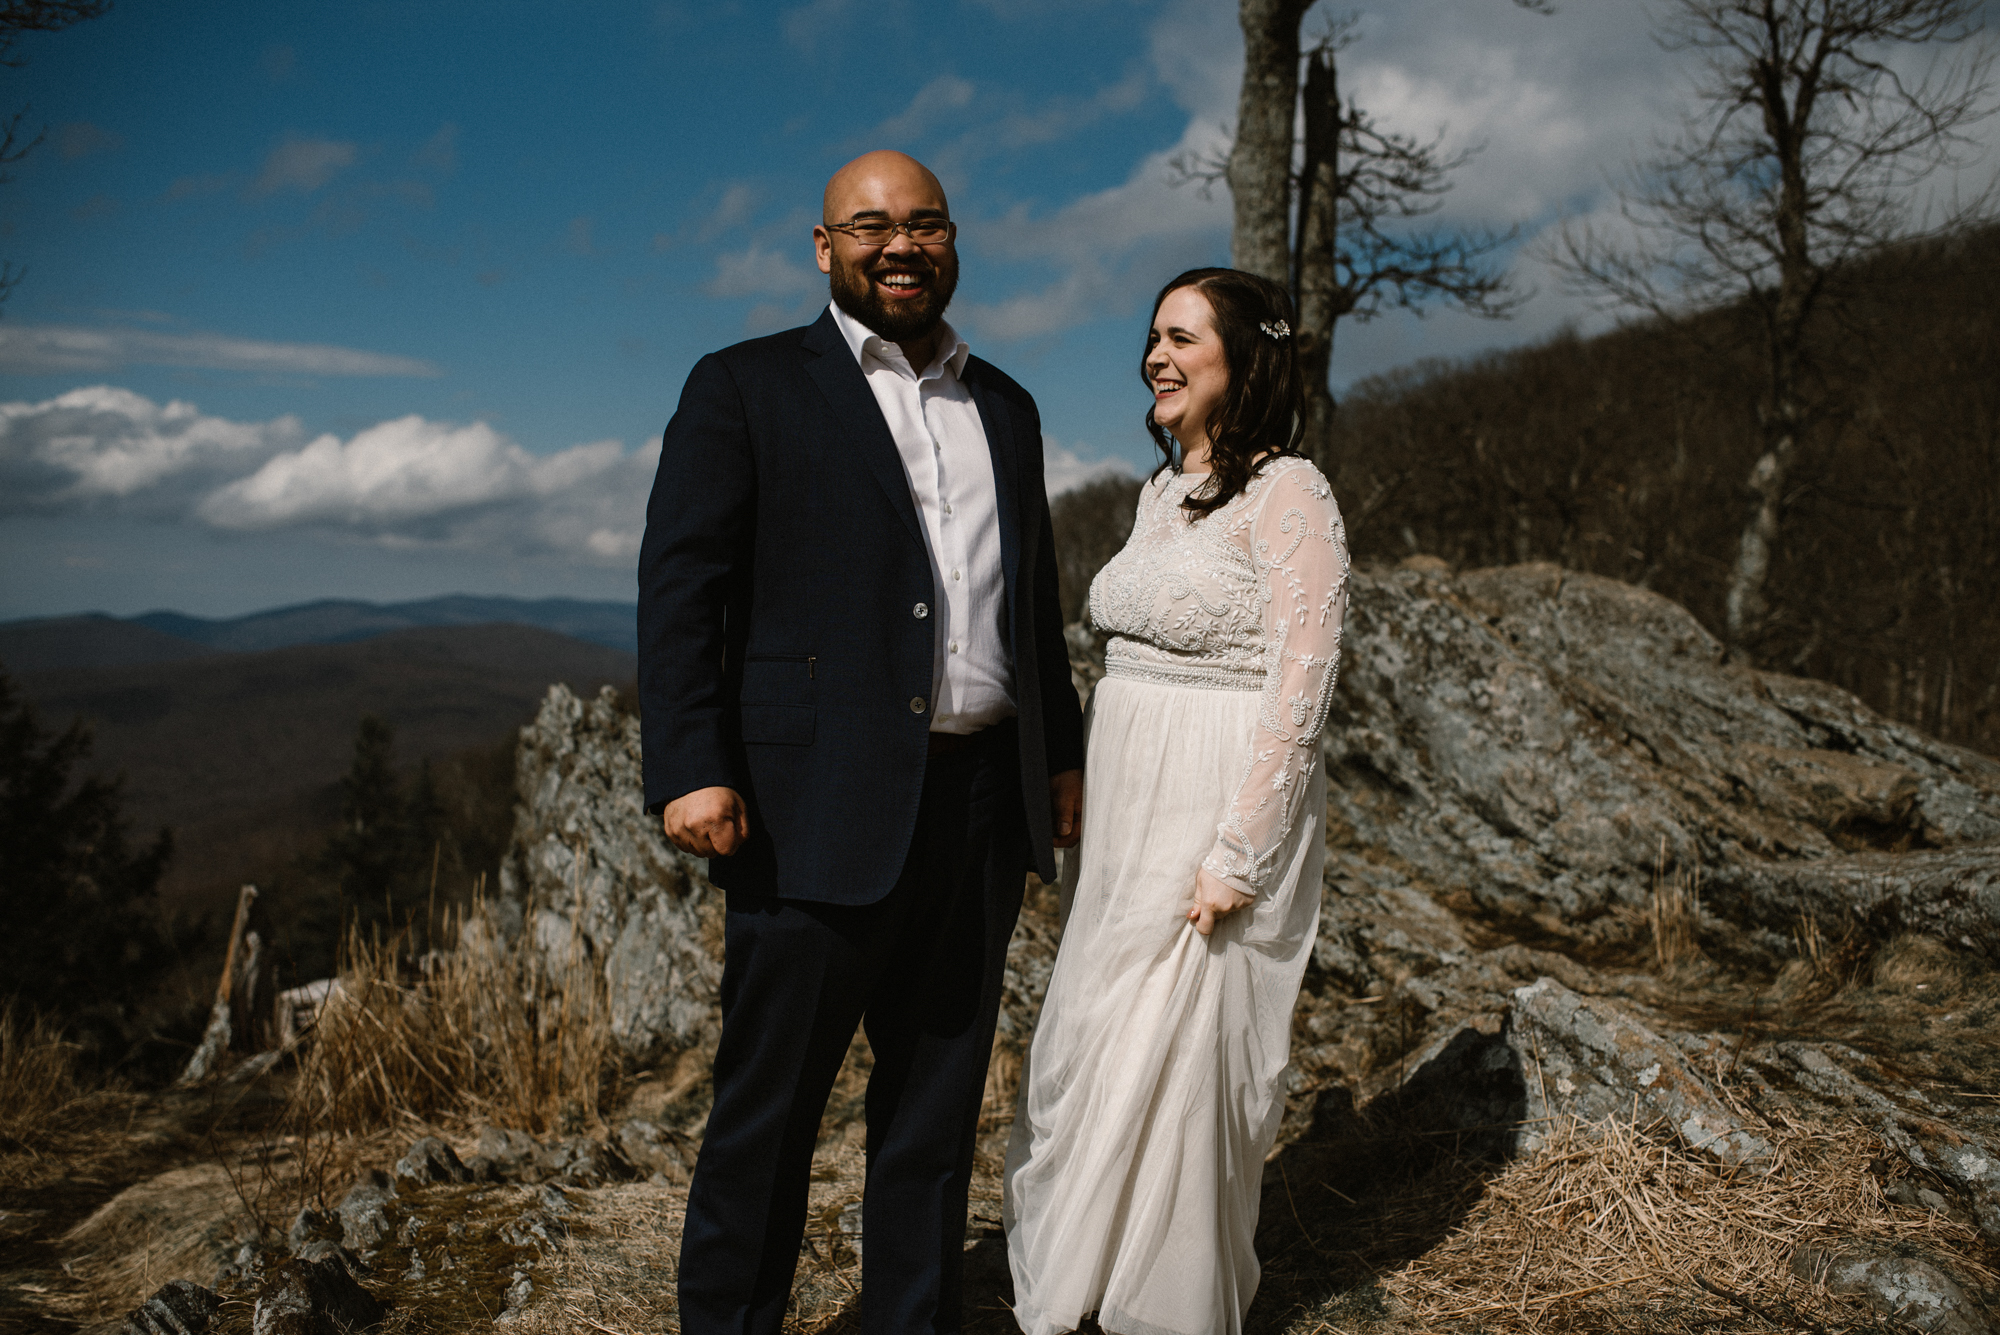 Emma and Jeddah - Intimate Luray Wedding - Shenandoah National Park Wedding - Adventure Elopement in Virginia - Shenandoah National Park Elopement_29.jpg